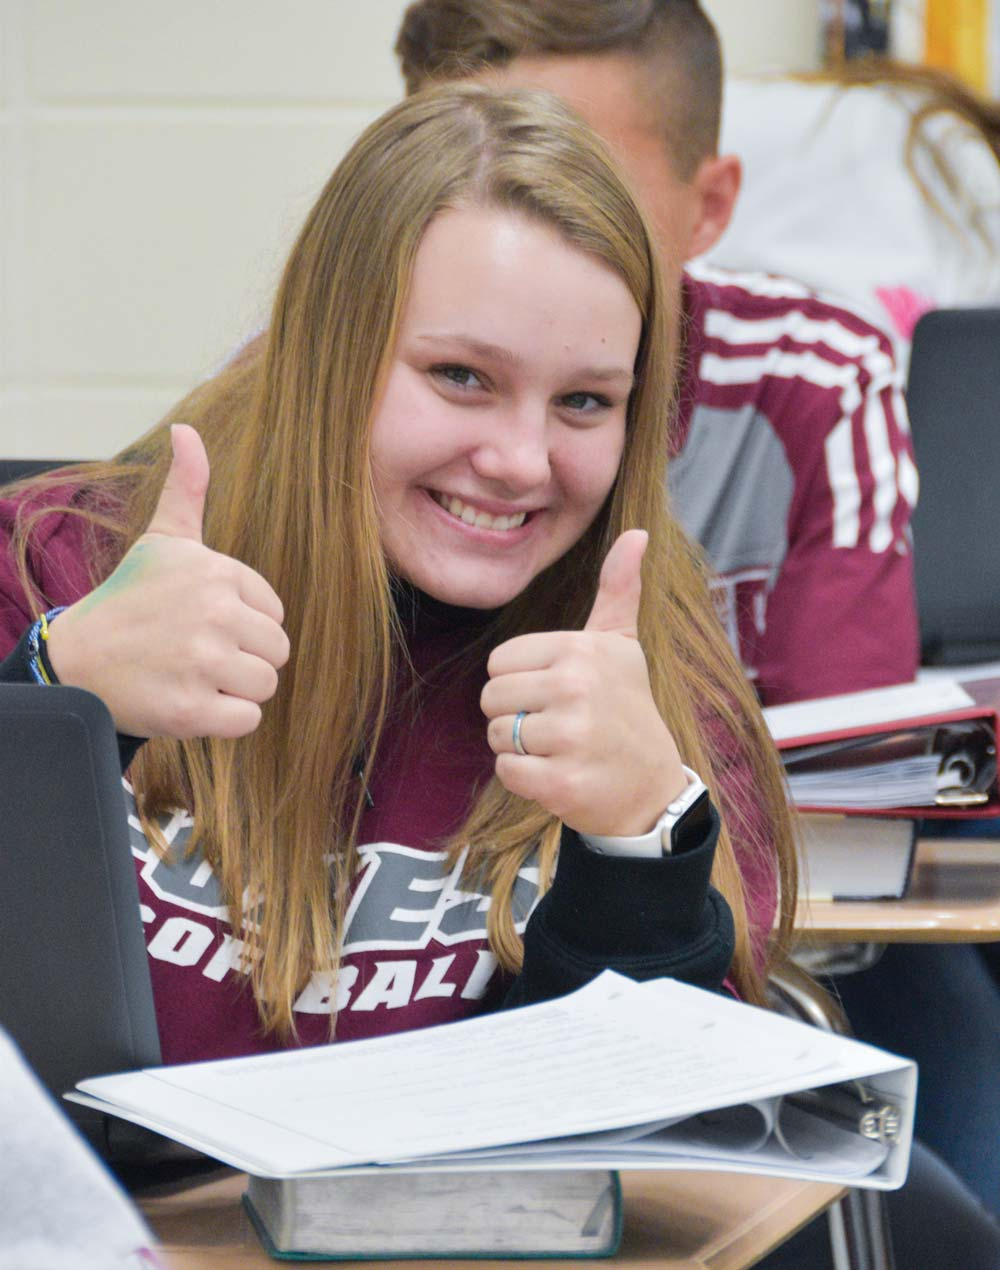 Smiling girl in class giving two thumbs up